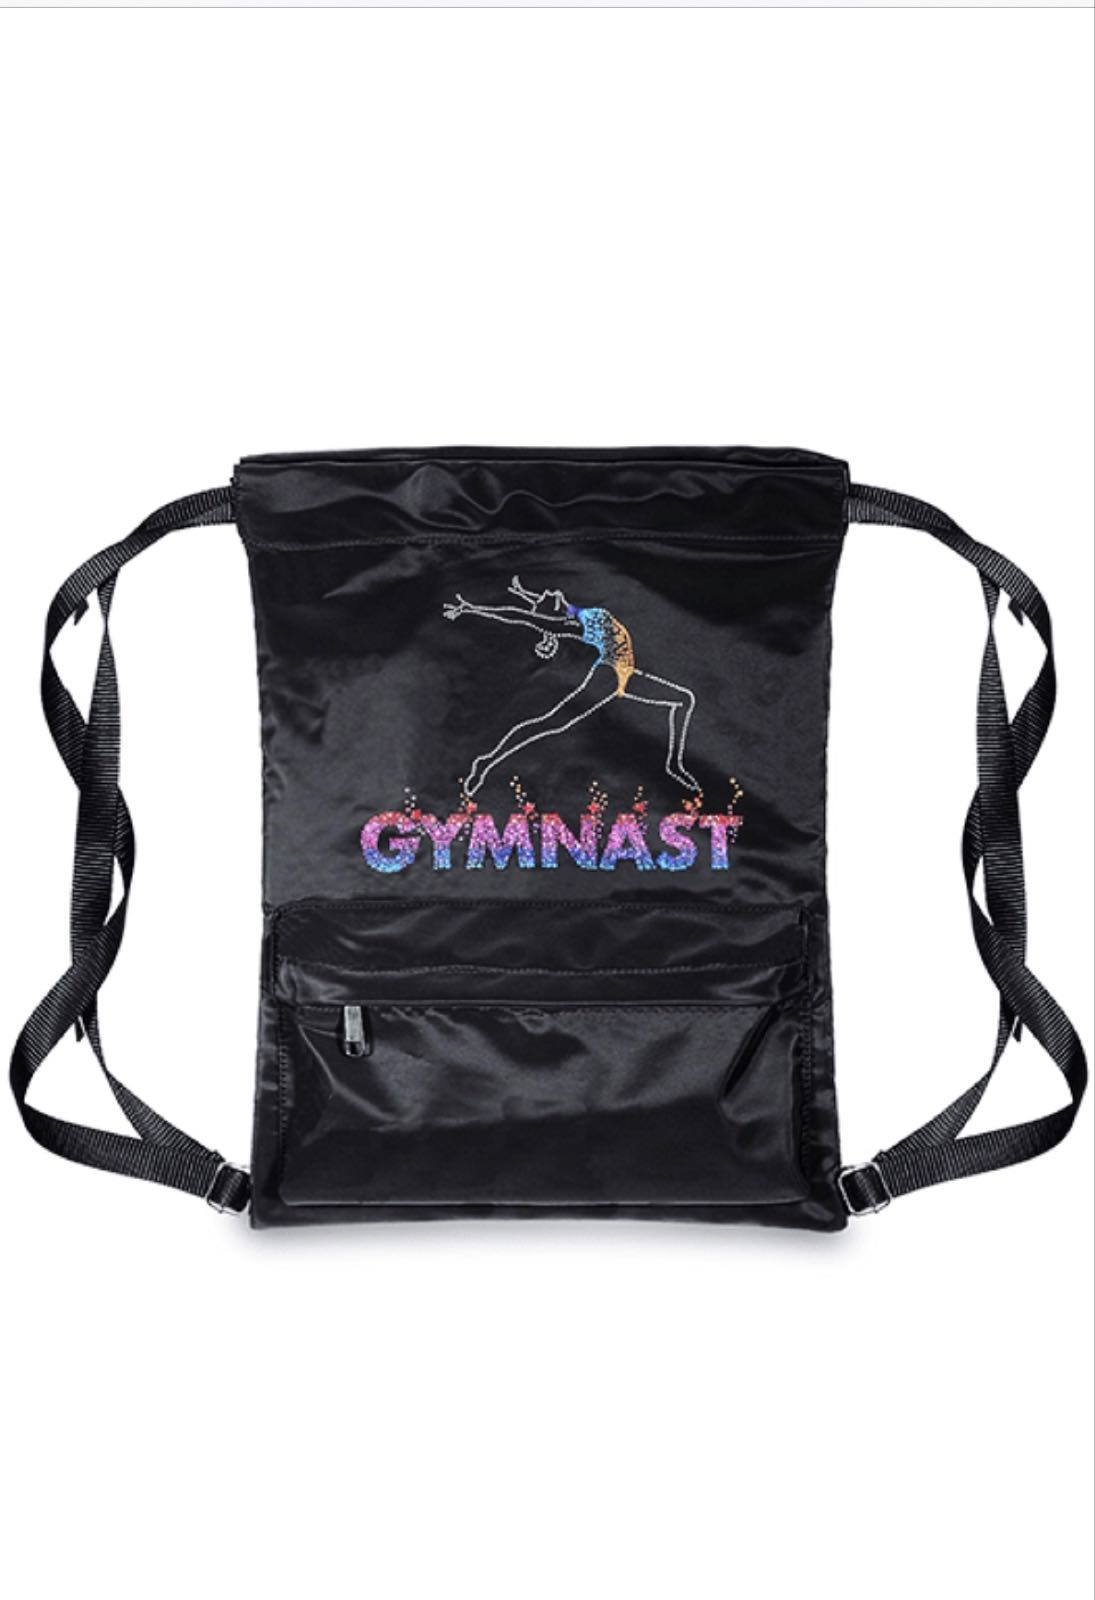 Gymnastics Drawstring & Pockets/Zip - Zone